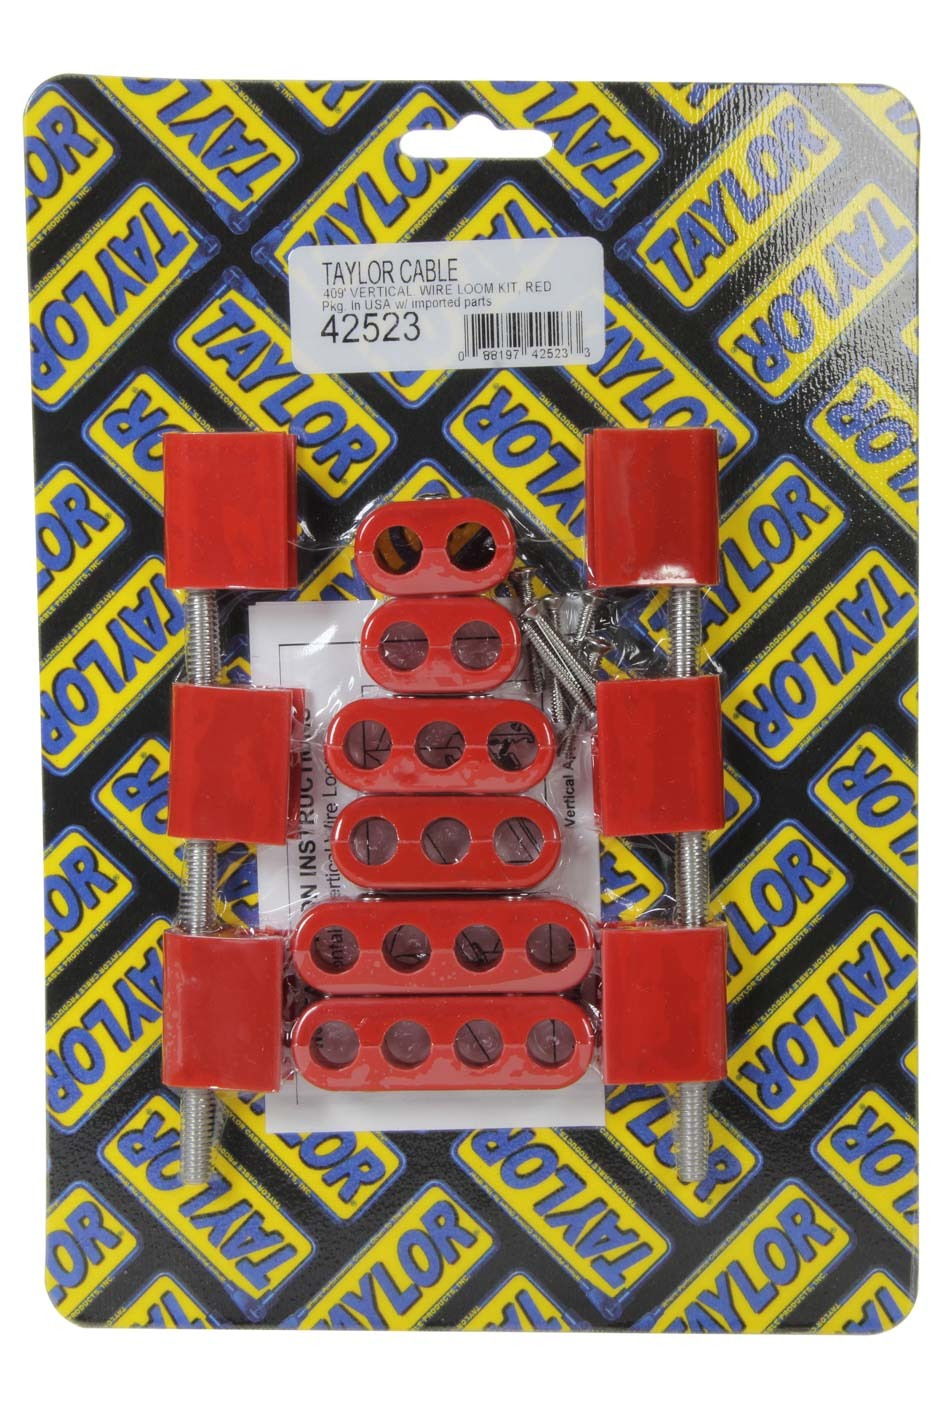 Taylor 10.4mm Vertical Wire Loom Kit Red